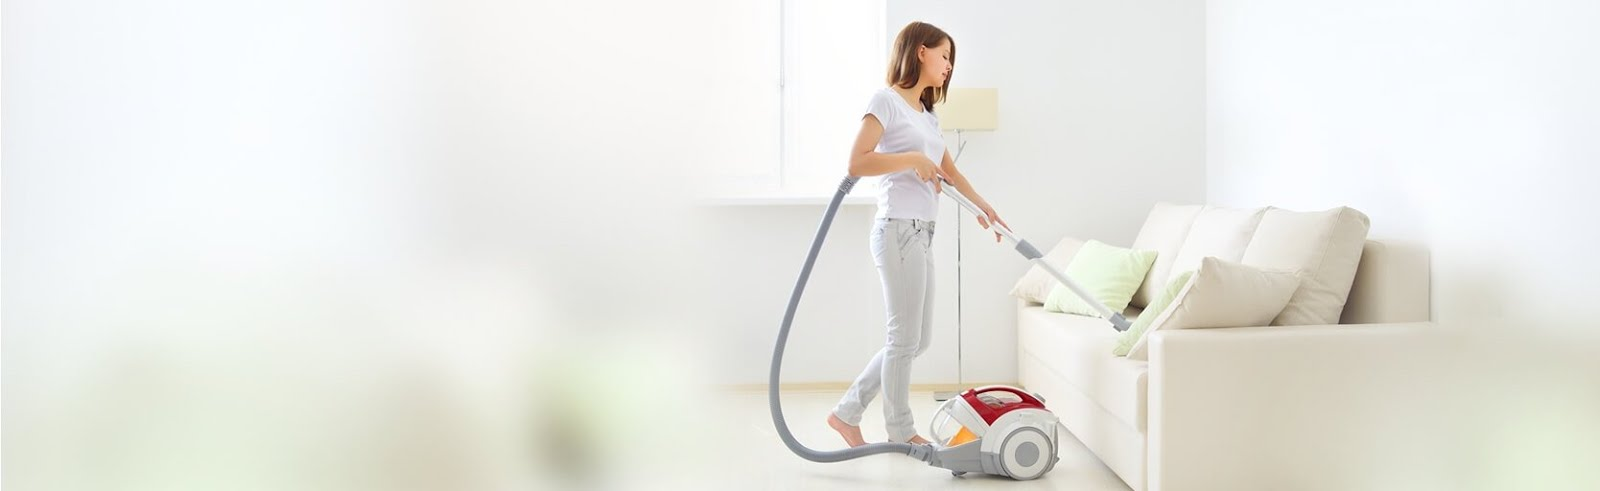 Commercial And Residential Cleaning Long Island Queens